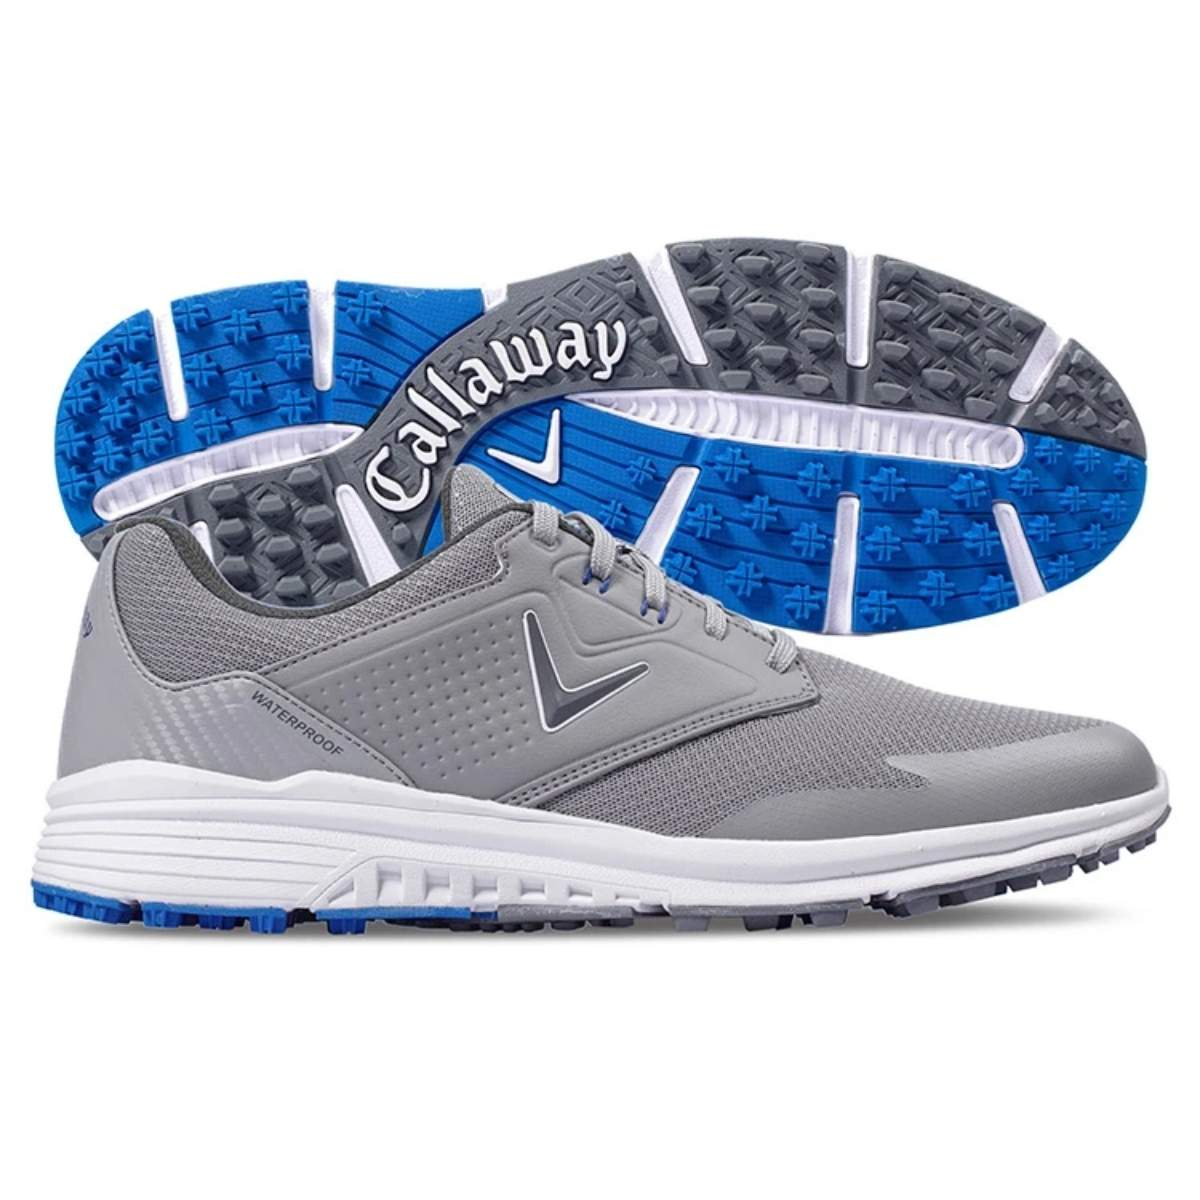 Callaway Men's Solana SL Golf Shoe - Grey/Blue